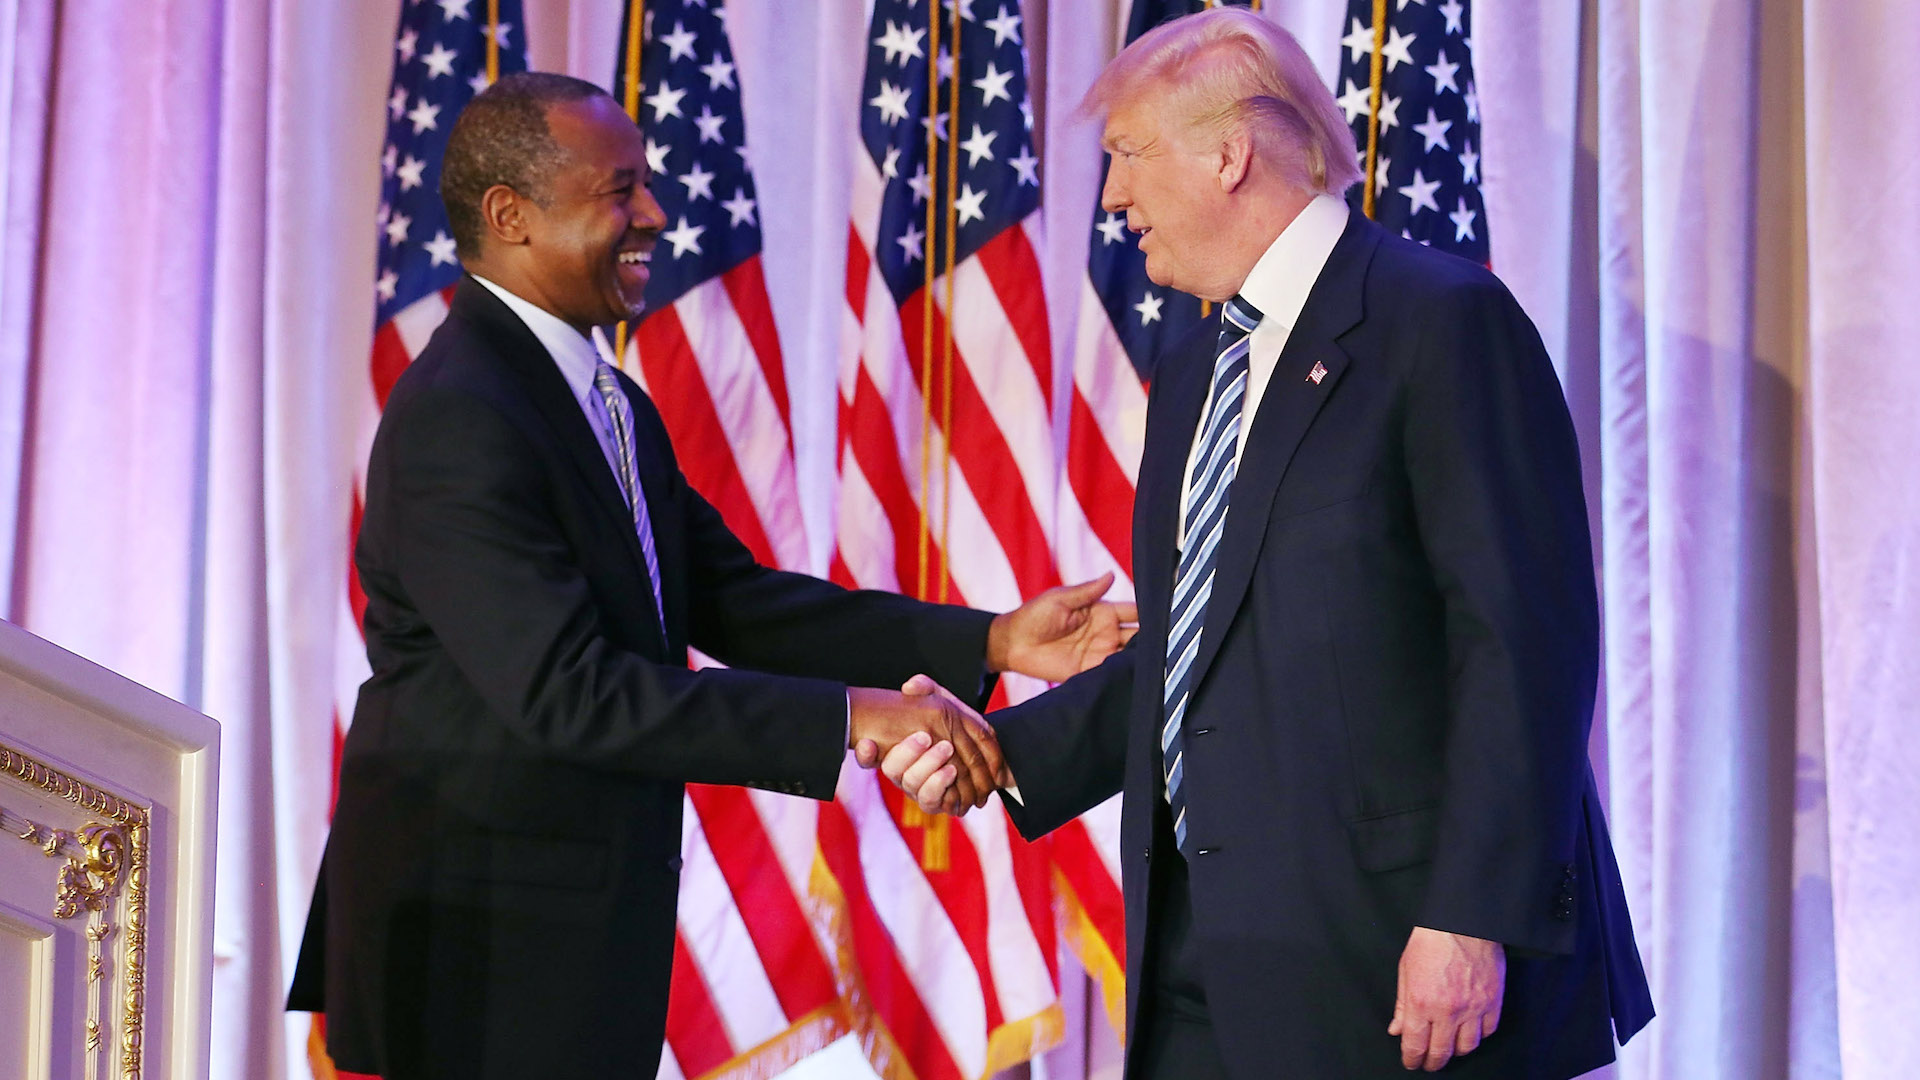 Trump nominates Carson to lead U.S. housing, urban policy